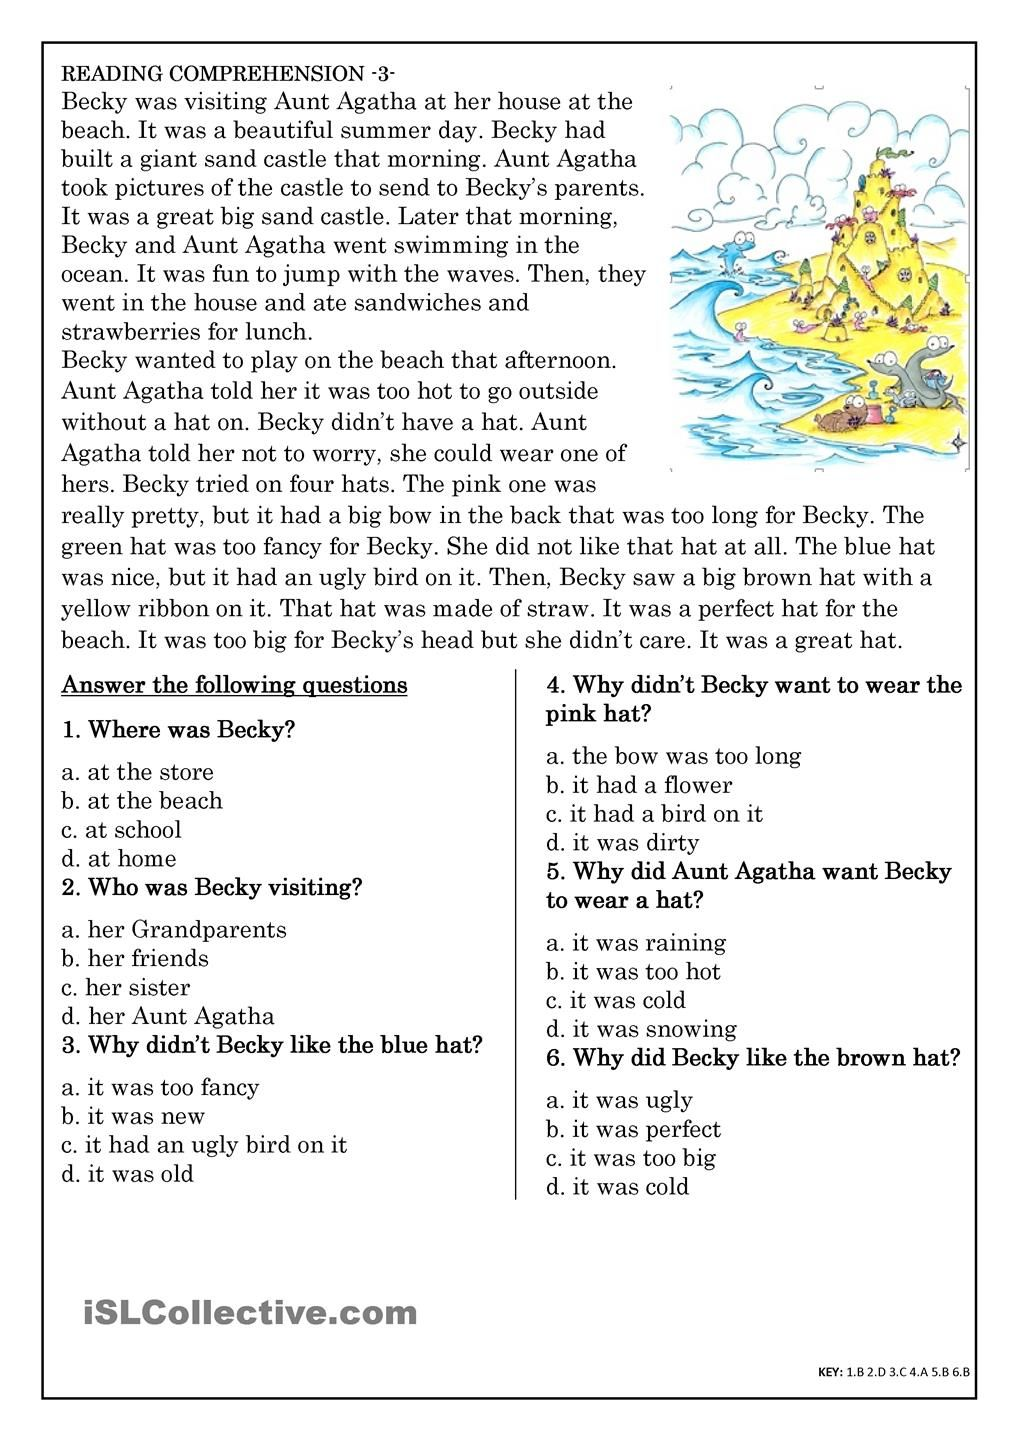 Worksheets Reading Comprehension Worksheets For Middle School reading comprehension for beginner and elementary students 3 esl worksheet free printable worksheets made by teachers